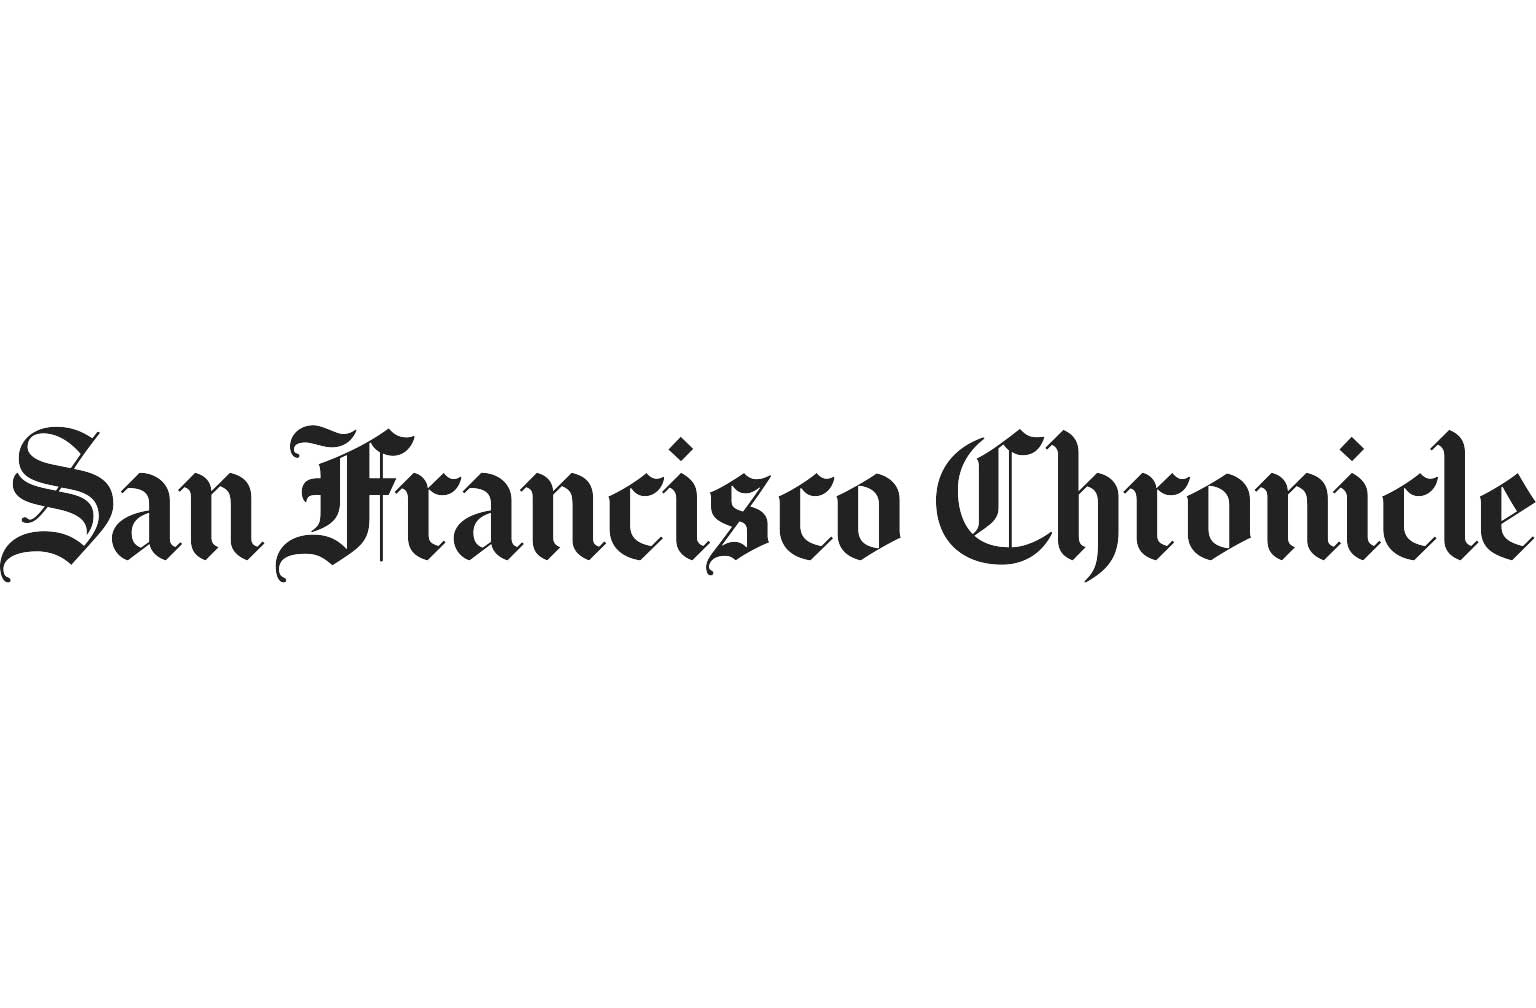 Public safety comes first – San Francisco Chronicle, 6/24/2019